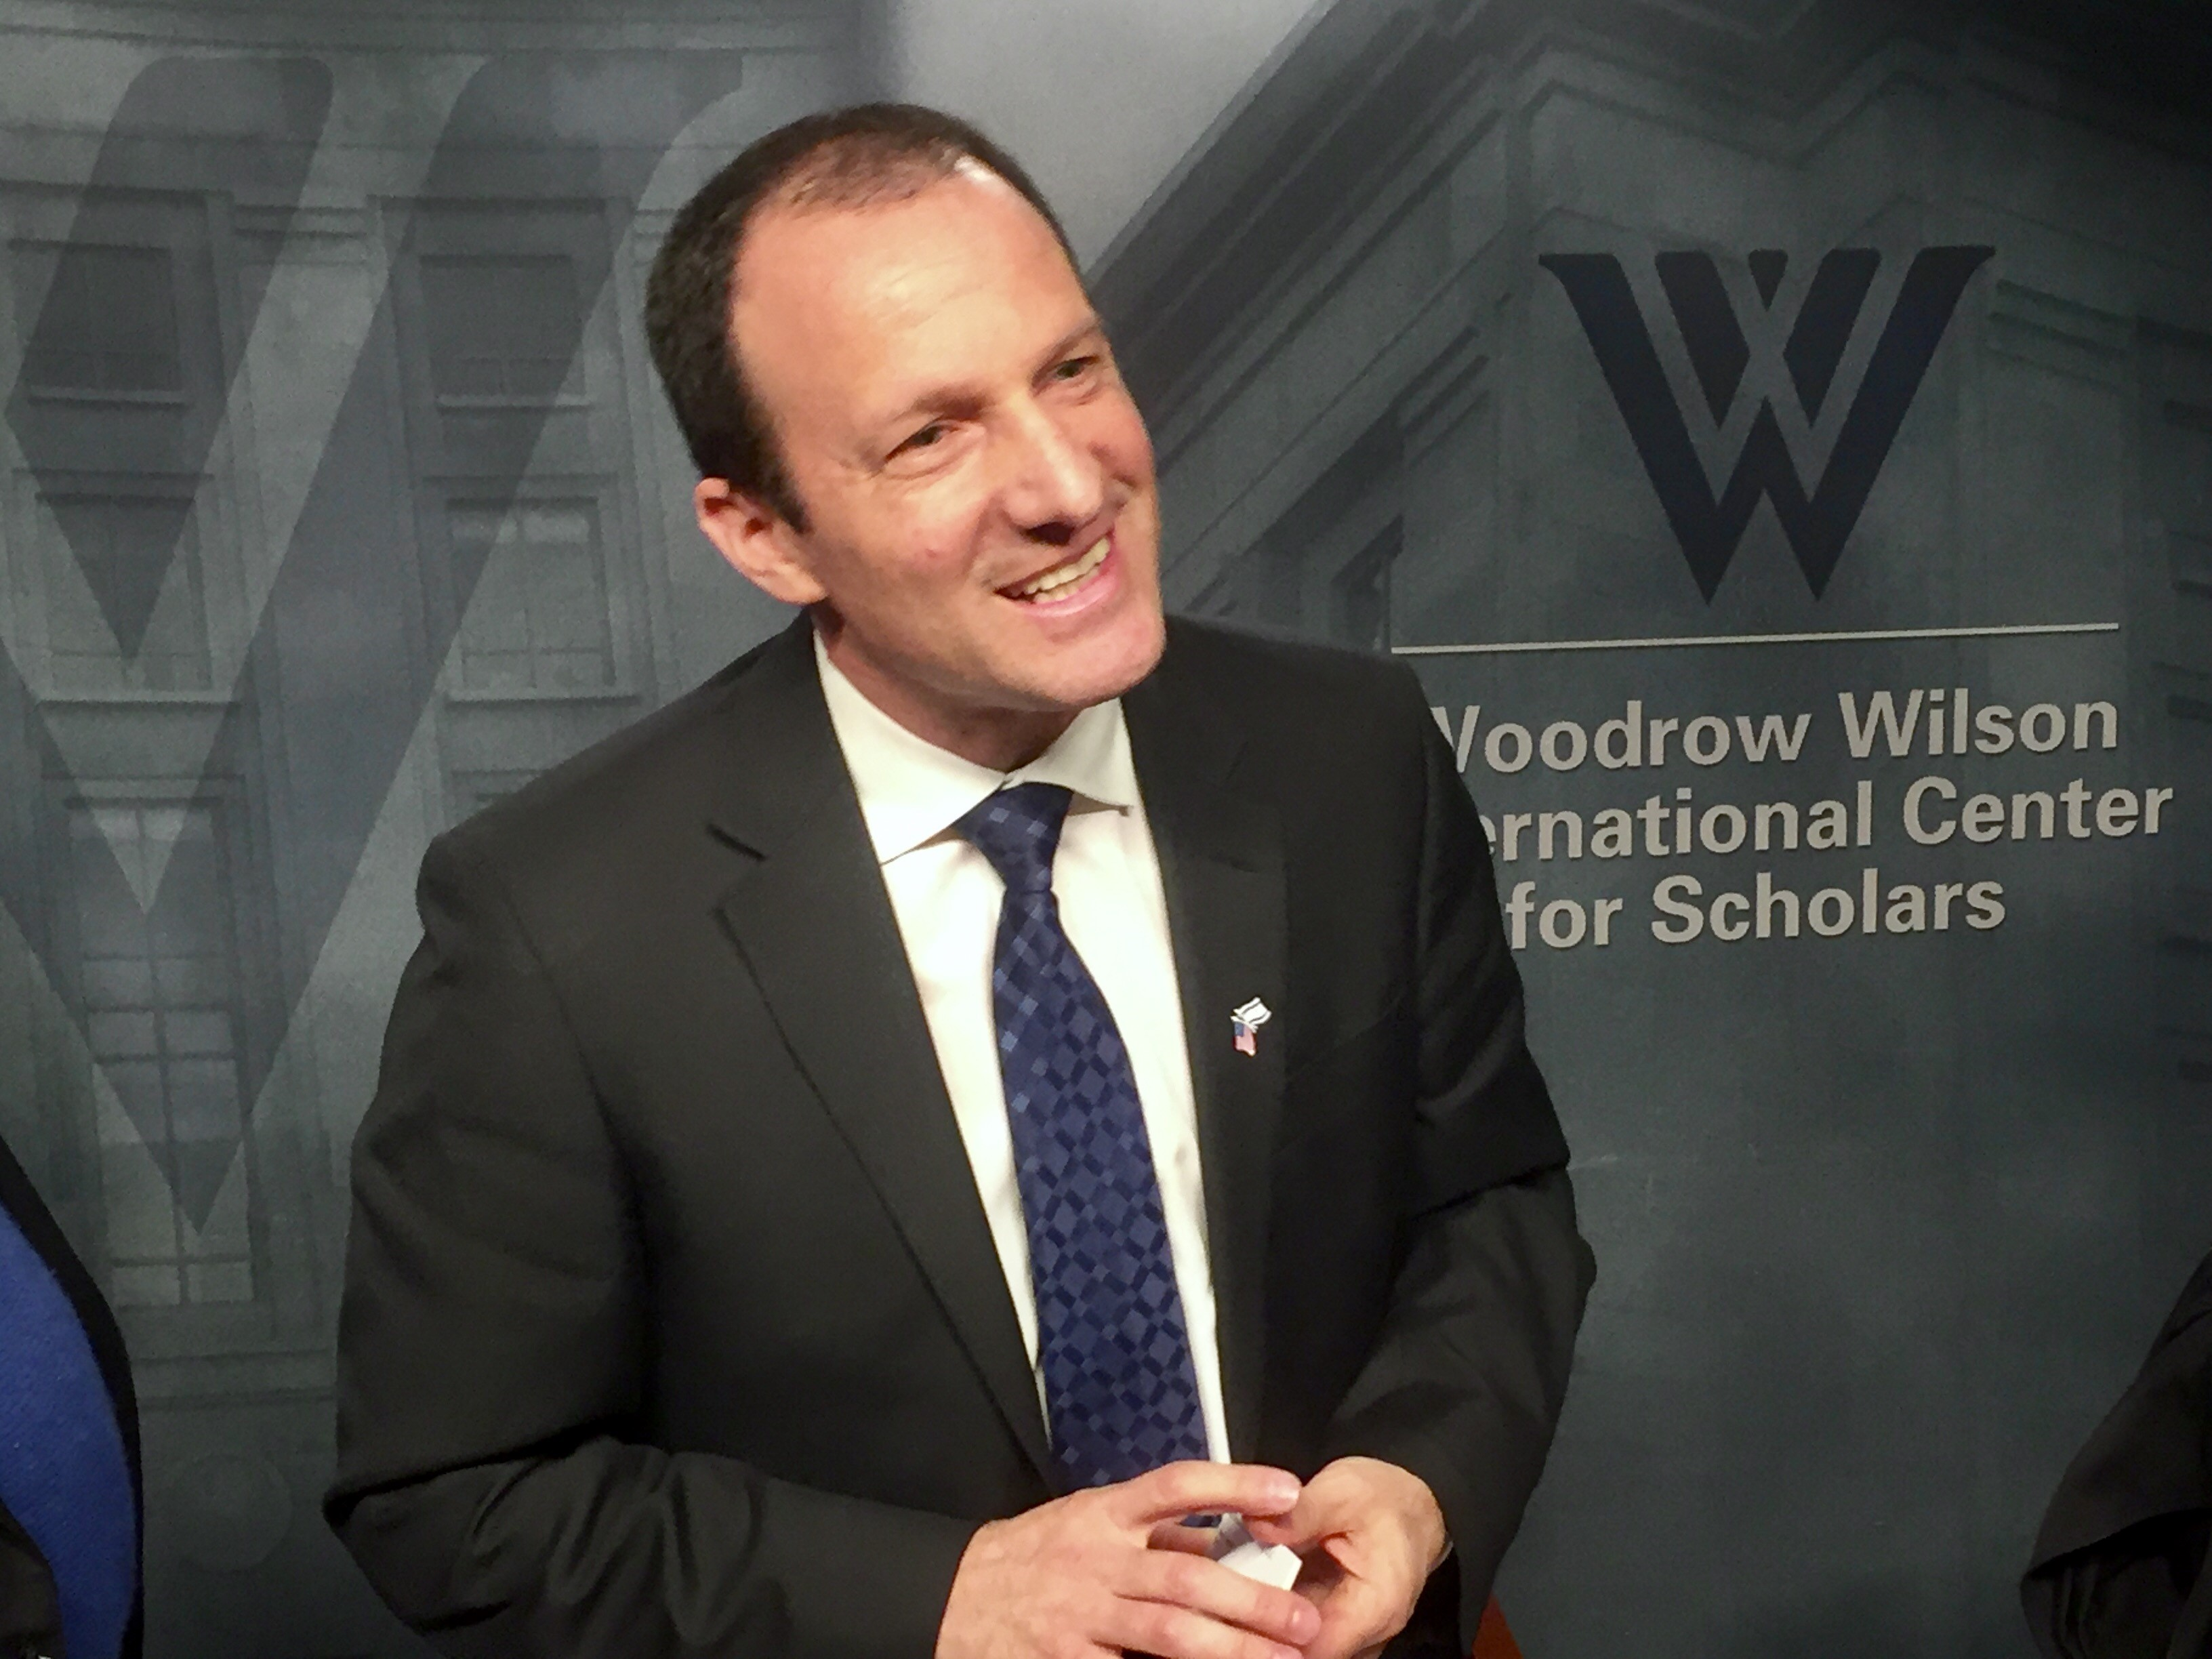 Reuven Azar, deputy head of mission at the Israeli embassy in Washington, appears at a Wilson Center forum in Washington on March 9, 2017.